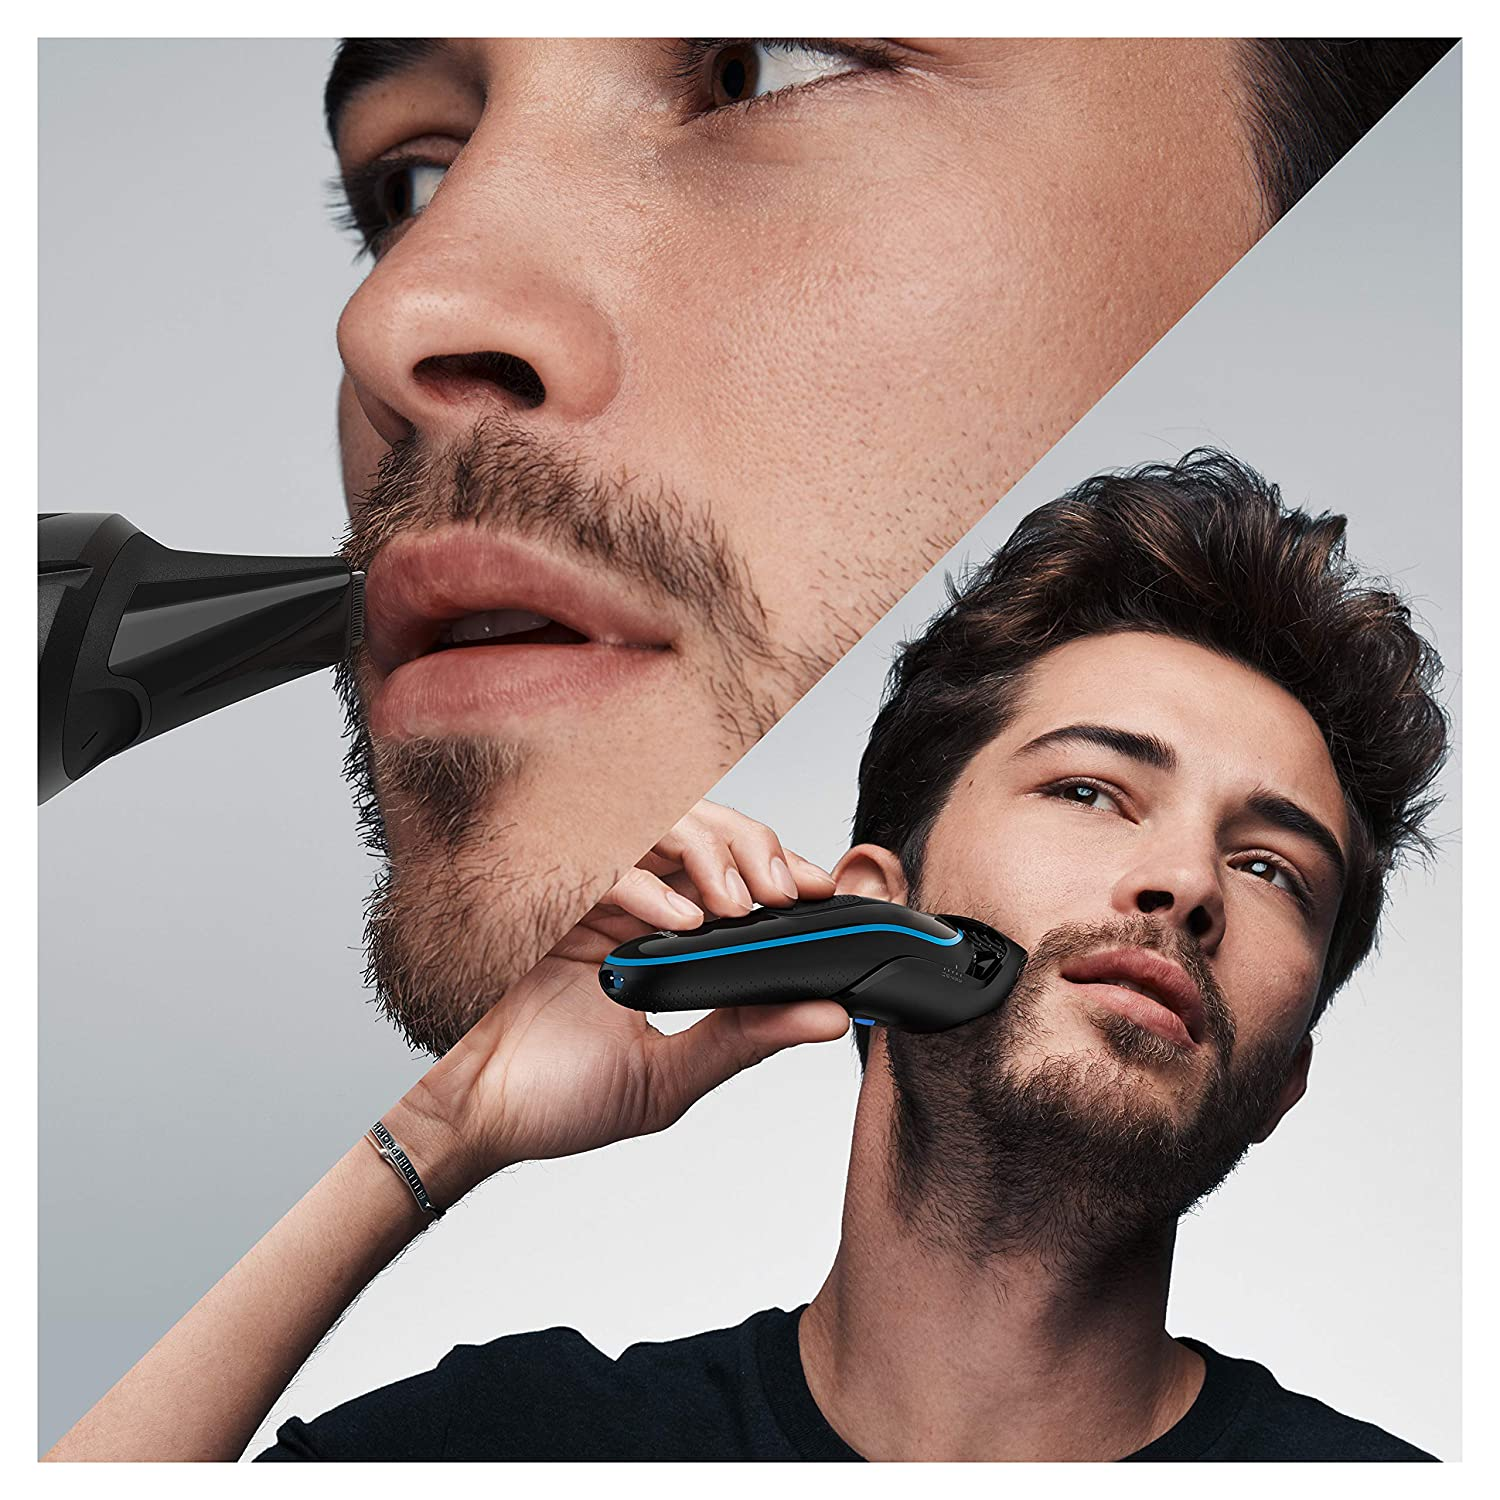 Braun Hair Clippers for Men MGK5245, 7-in-1 Beard Trimmer, Detail Trimmer, Cordless & Rechargeable, with Gillette ProGlide Razor enlarge